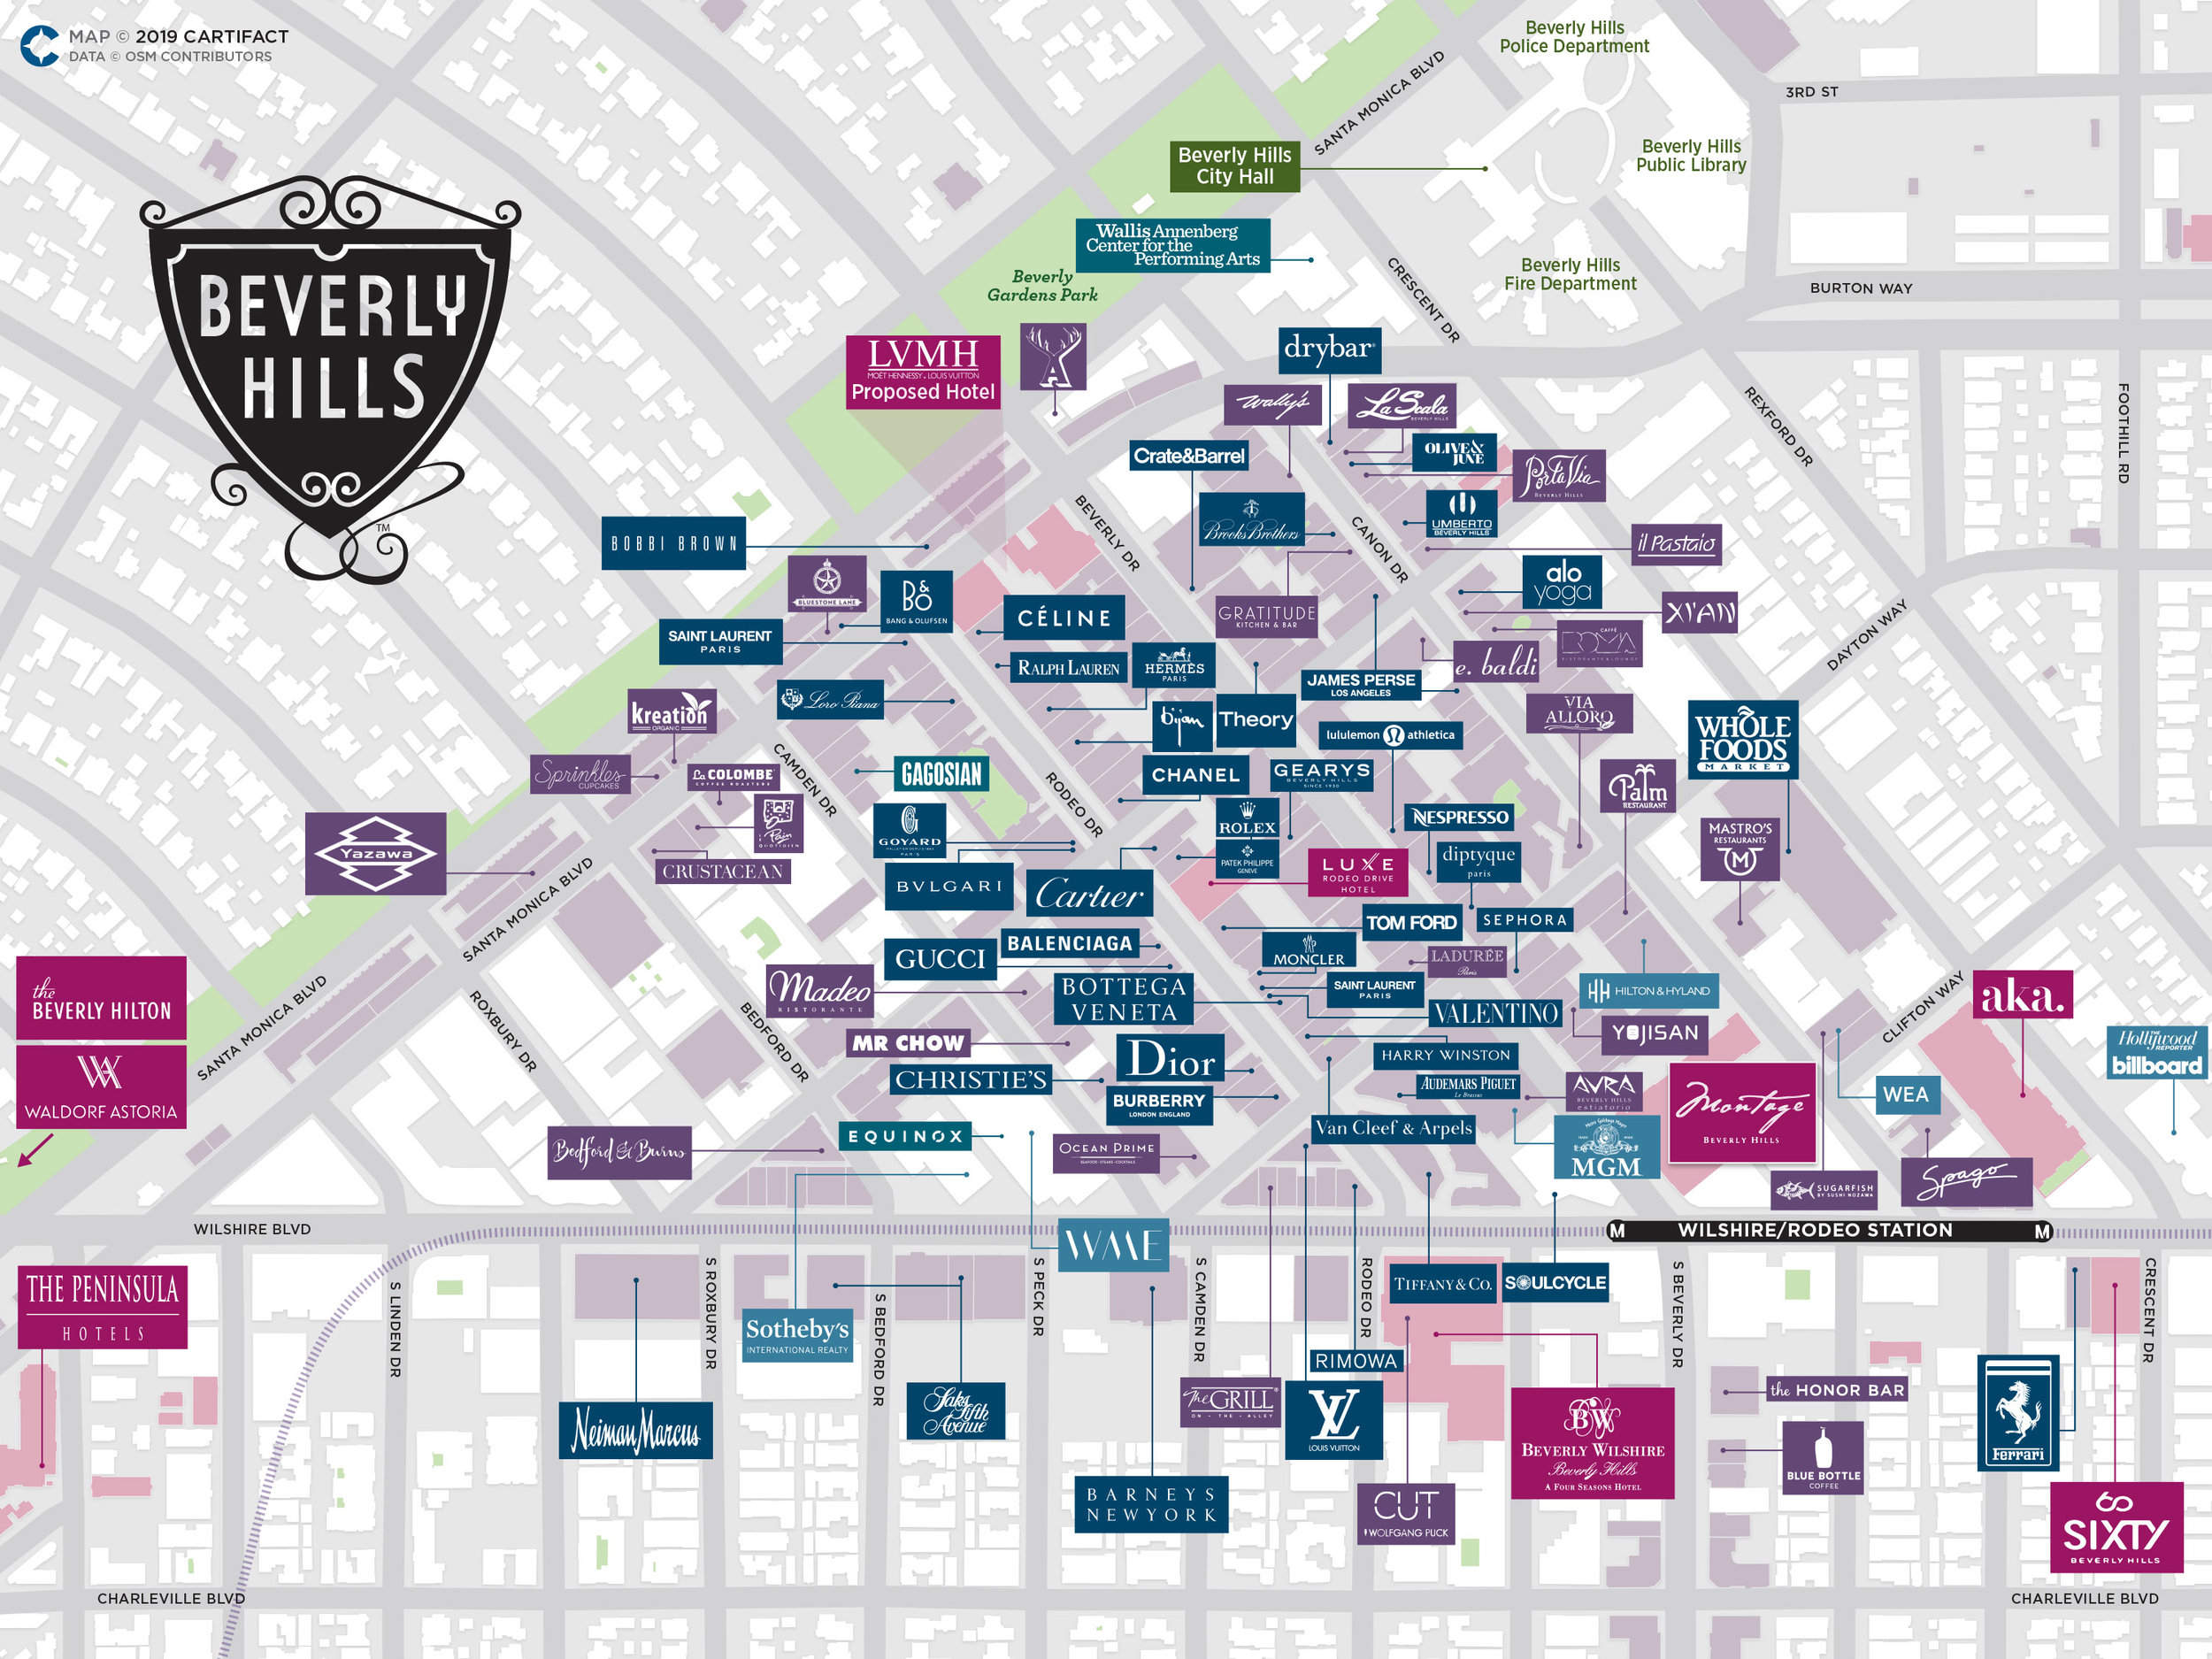 CA Weho Beverly Hills Detail Amenities Map.jpg